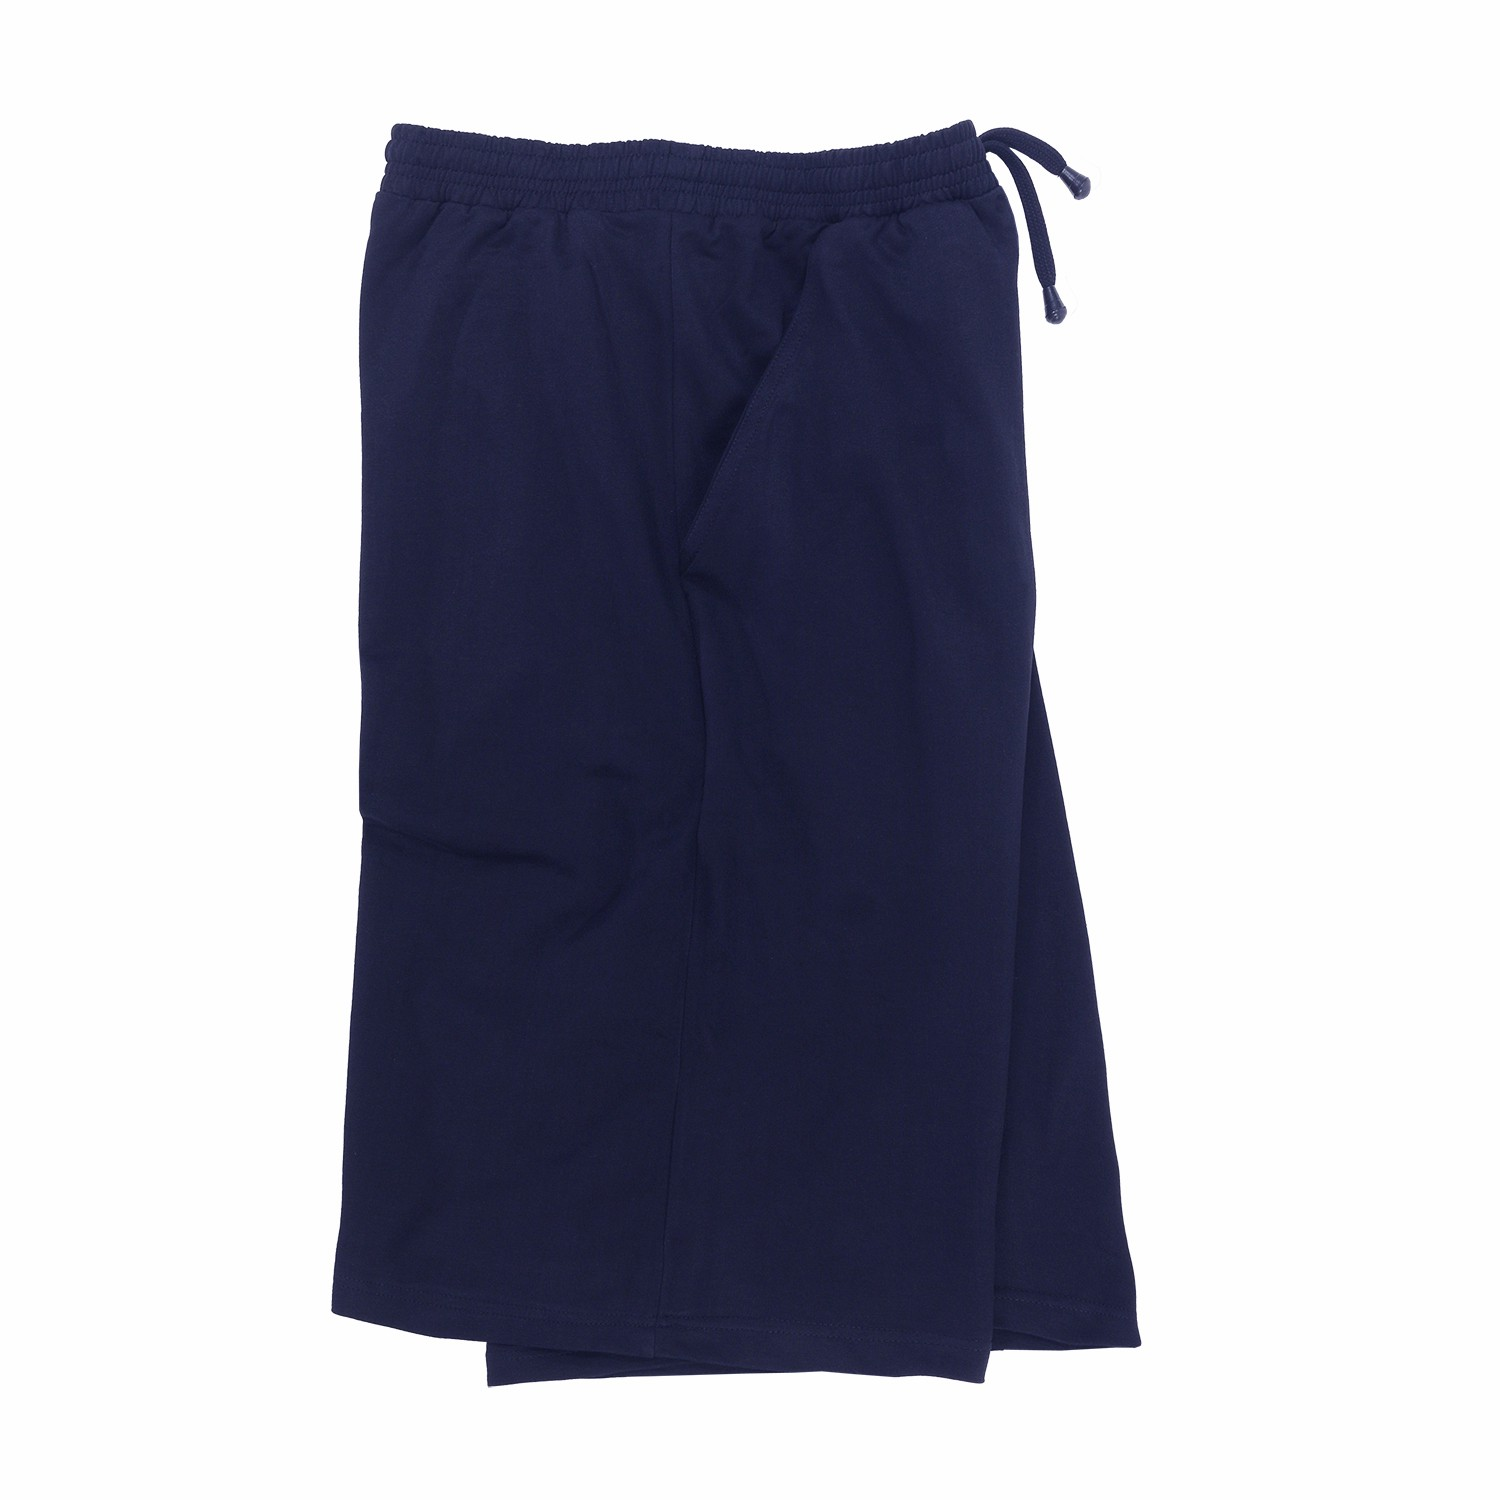 Detail Image to Blue short jogging trousers up to 12XL by BigBasics